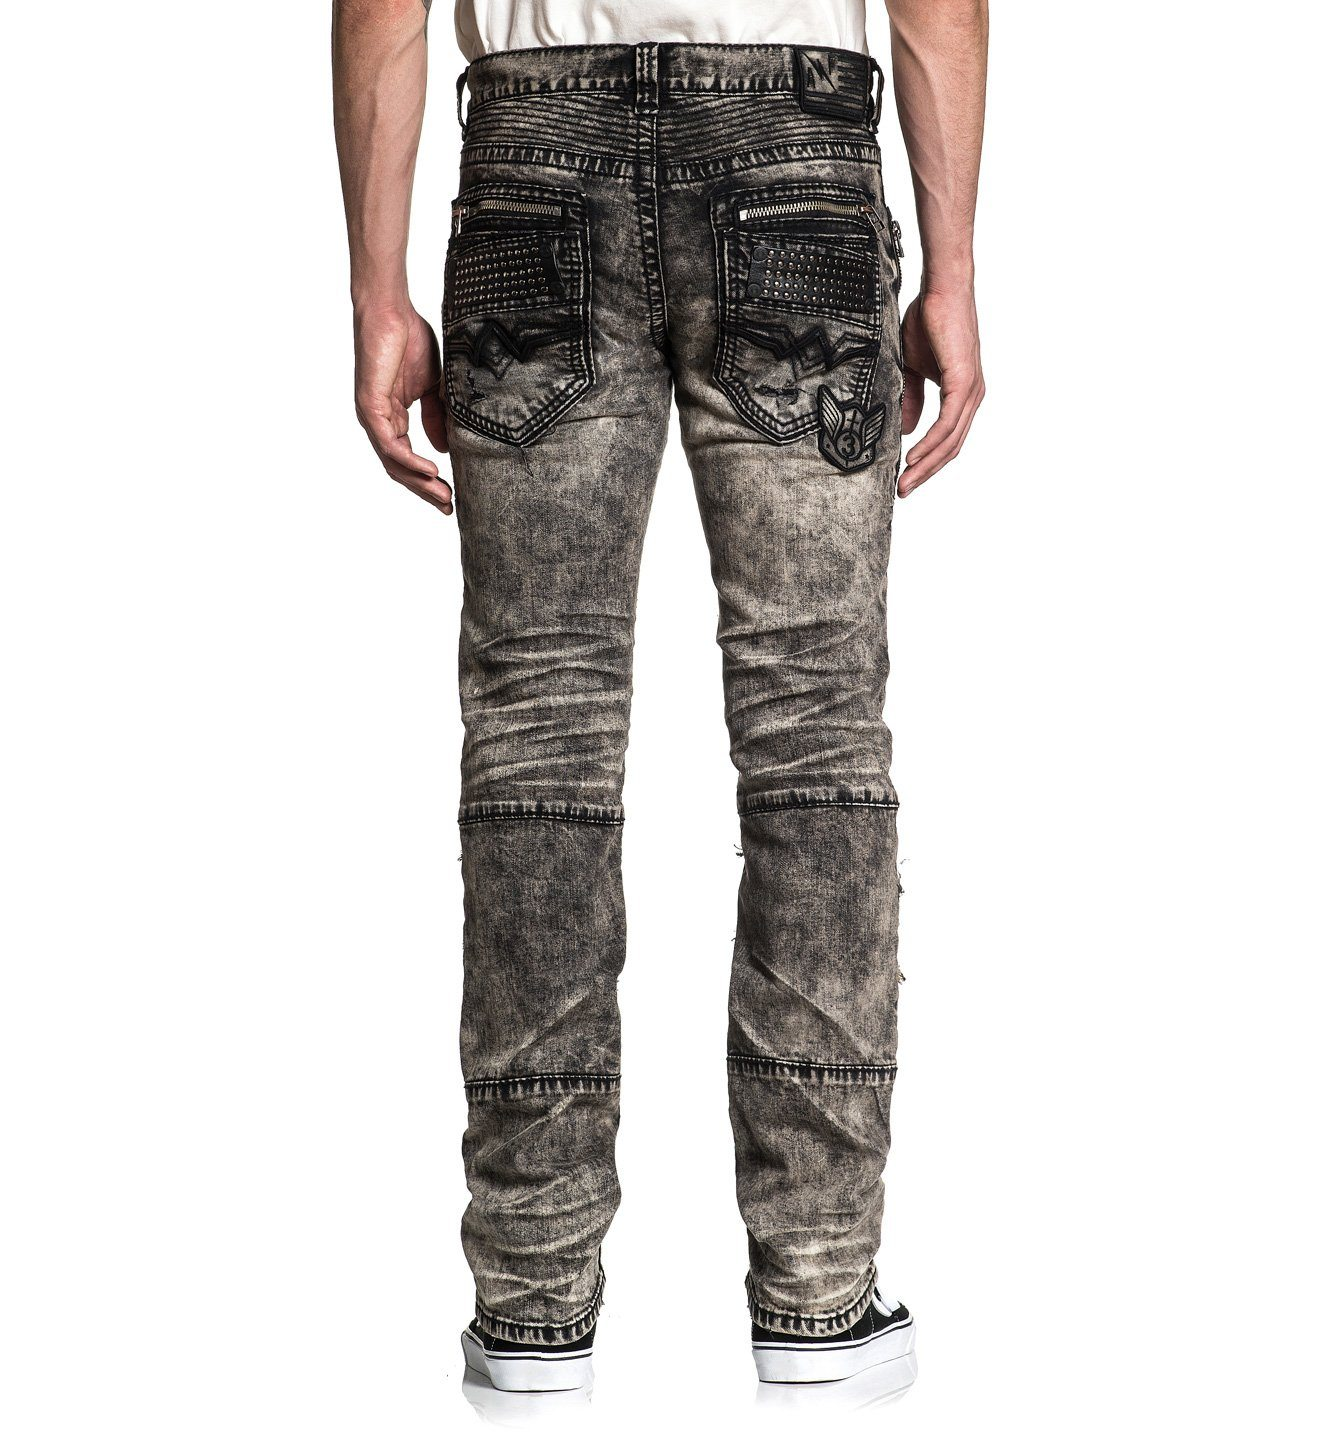 Gage Fallen Matador - Mens Denim Bottoms - Affliction Clothing